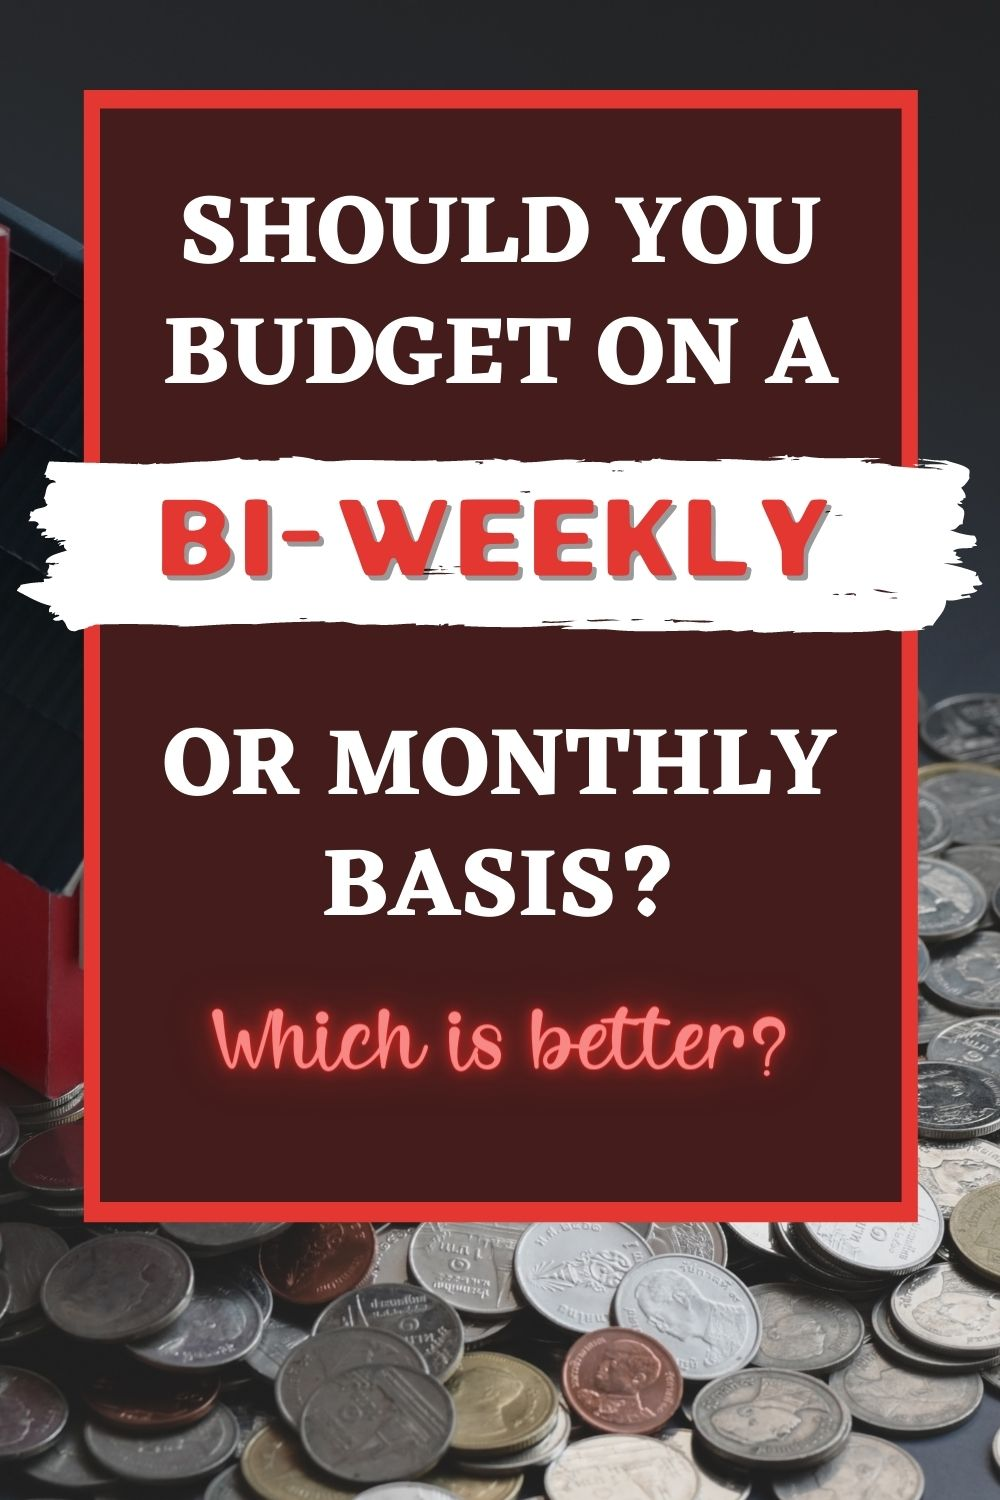 Should You Budget on a Monthly or Bi-Weekly Basis?